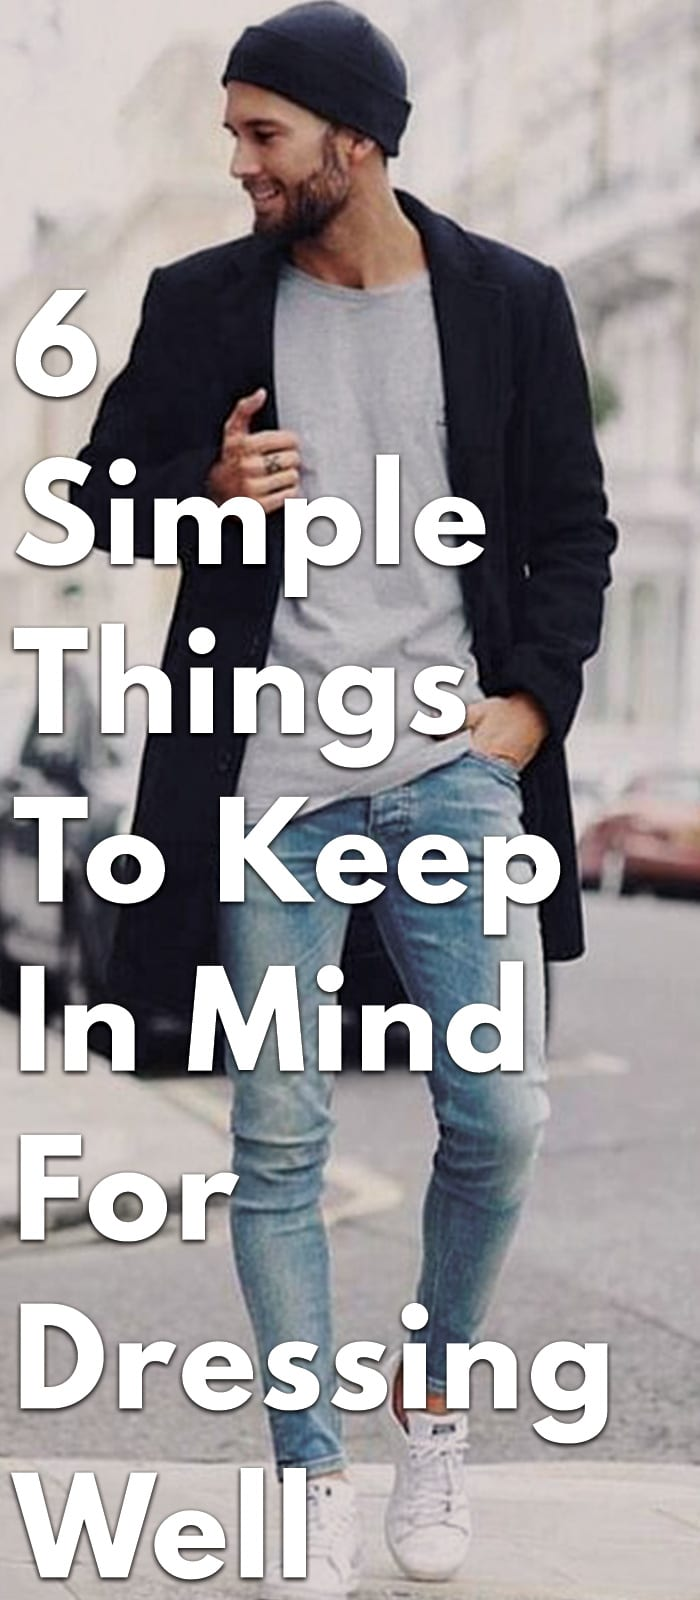 6-Simple-Things-to-Keep-in-Mind-for-Dressing-Well